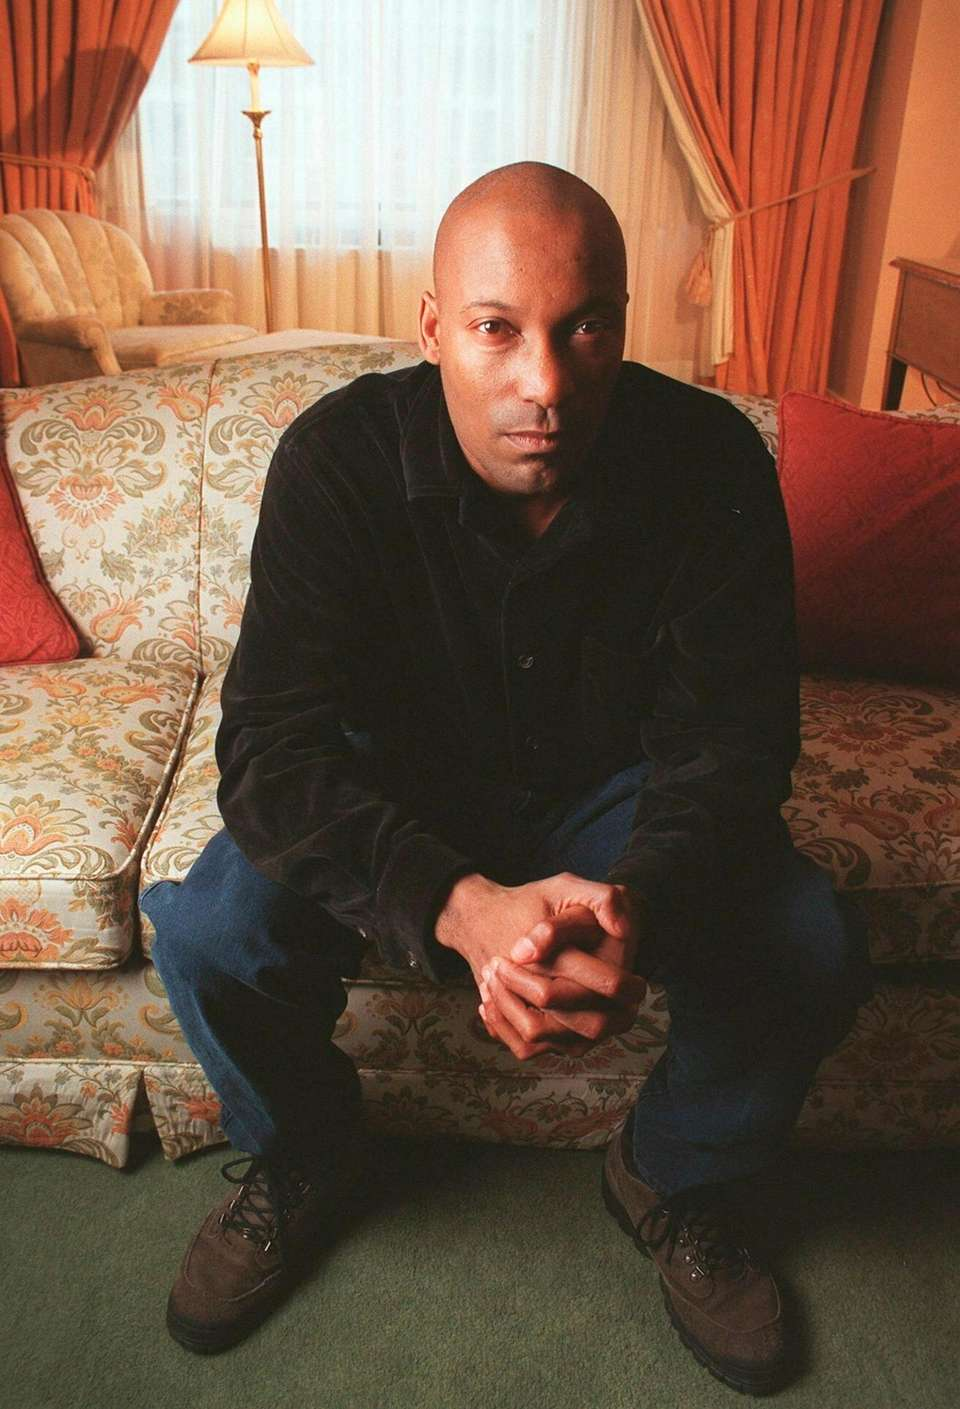 John Singleton, the filmmaker whose groundbreaking 1991 drama